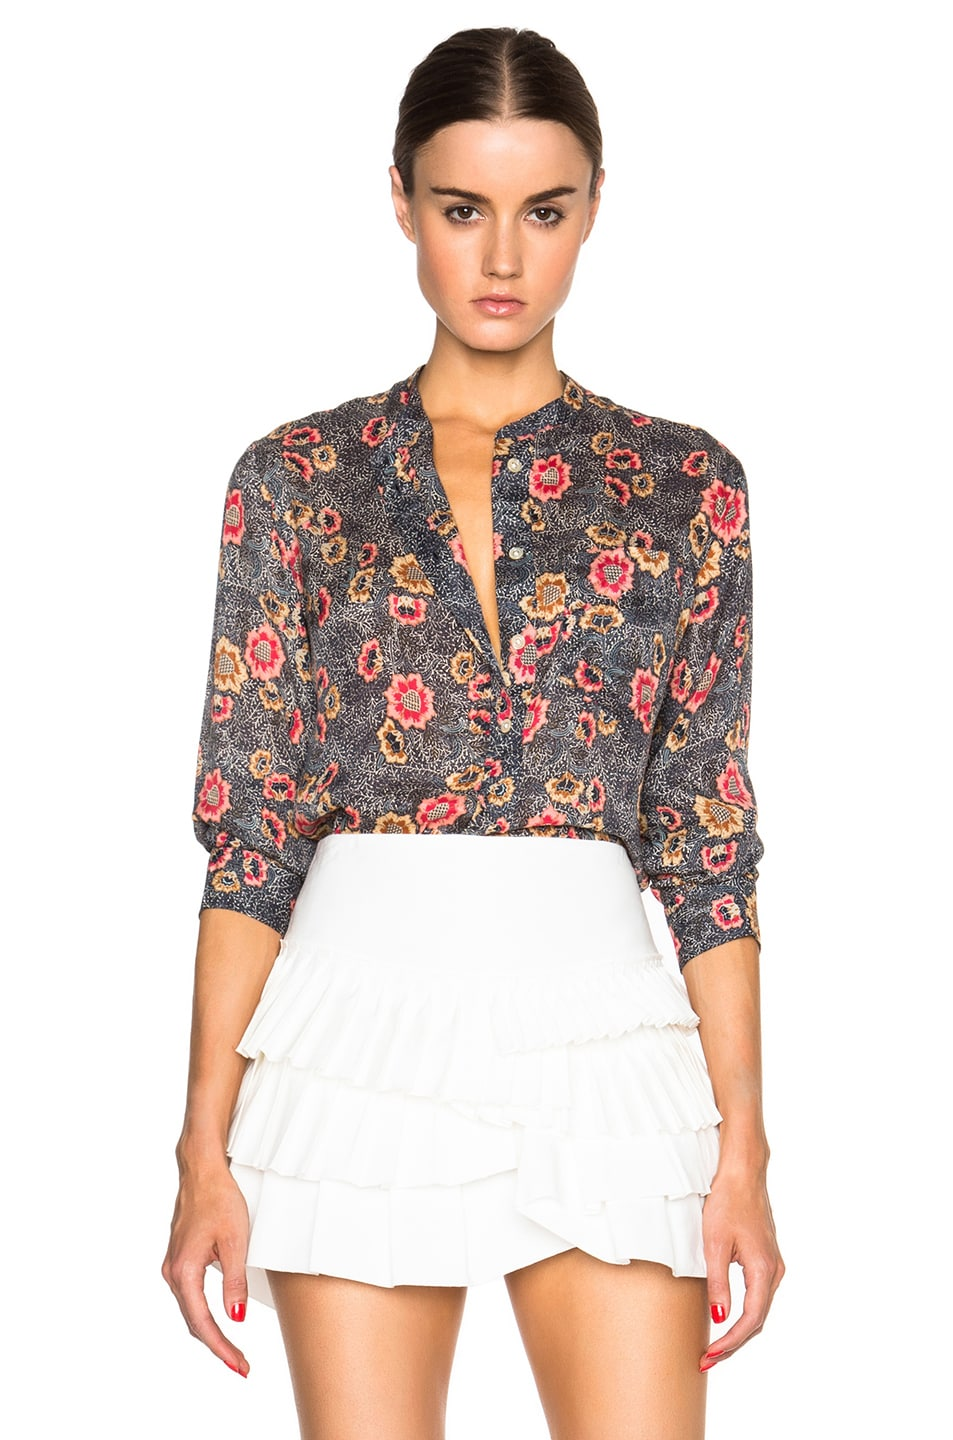 c997bfa03e Image 1 of Isabel Marant Etoile Isabel Marant Silena Flowers Blouse in  Faded Black